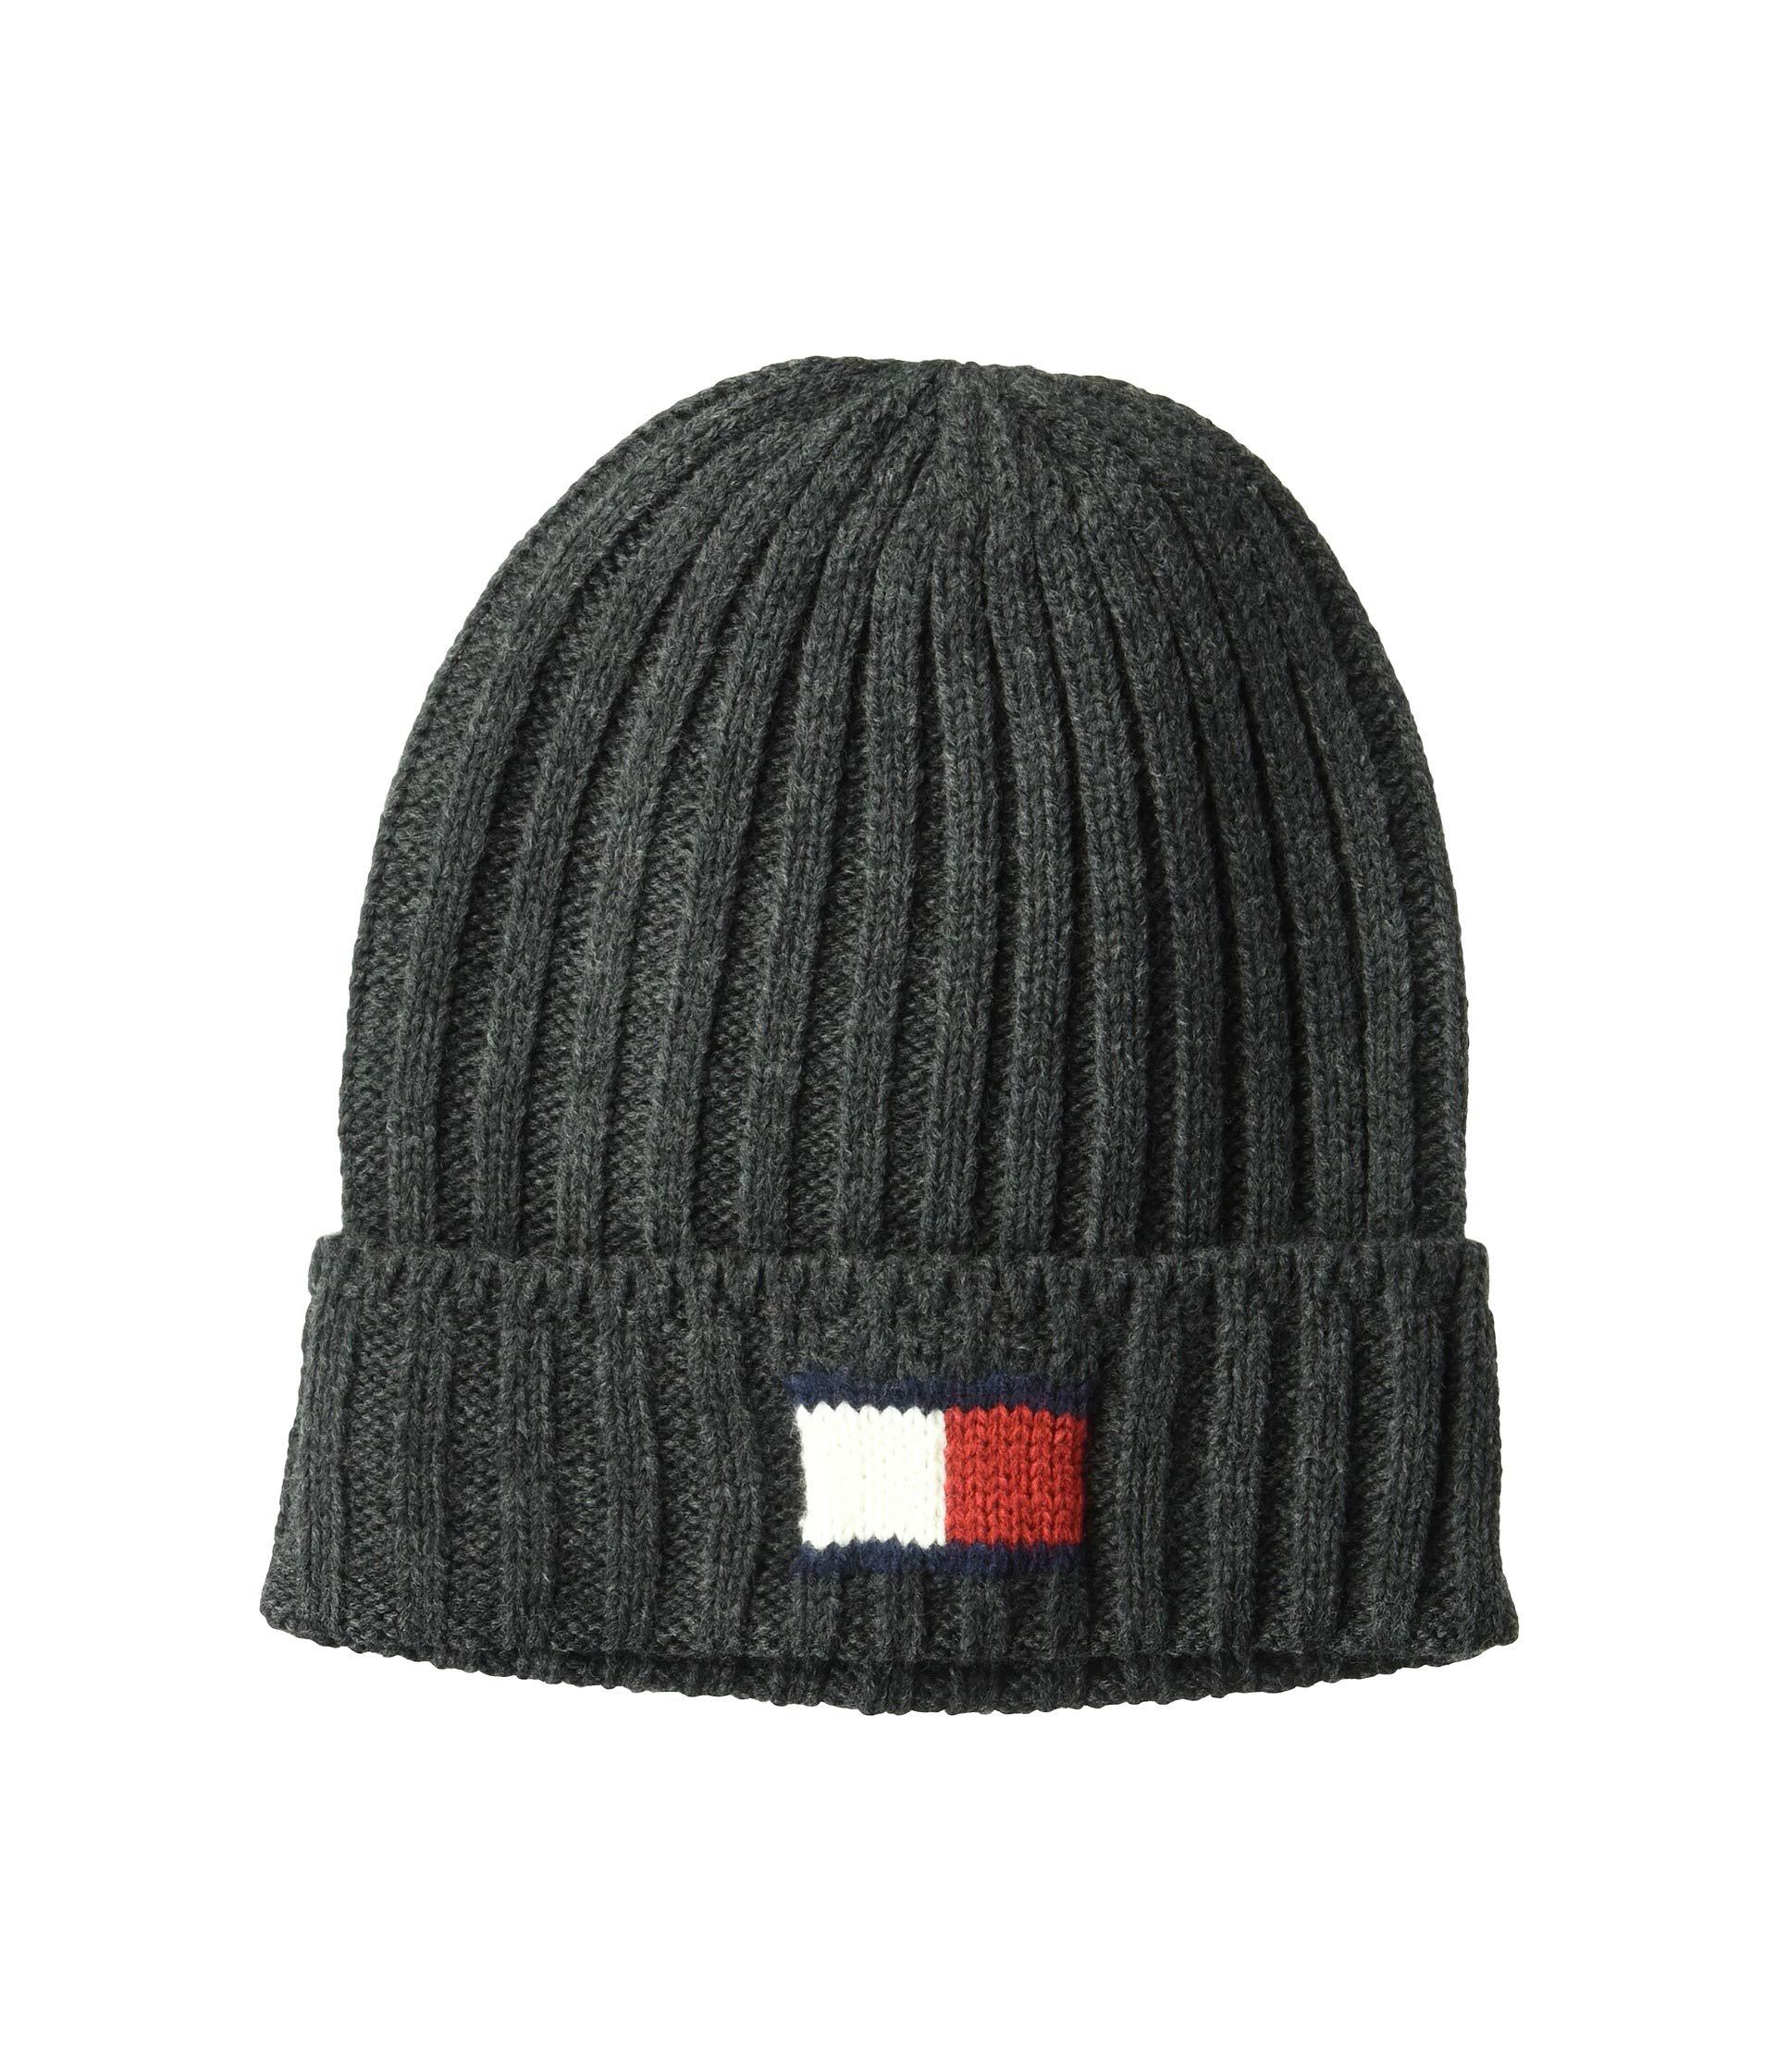 1601c24a92b23 Lyst - Tommy Hilfiger Knit Logo Cuff Hat (charcoal) Caps in Gray for Men